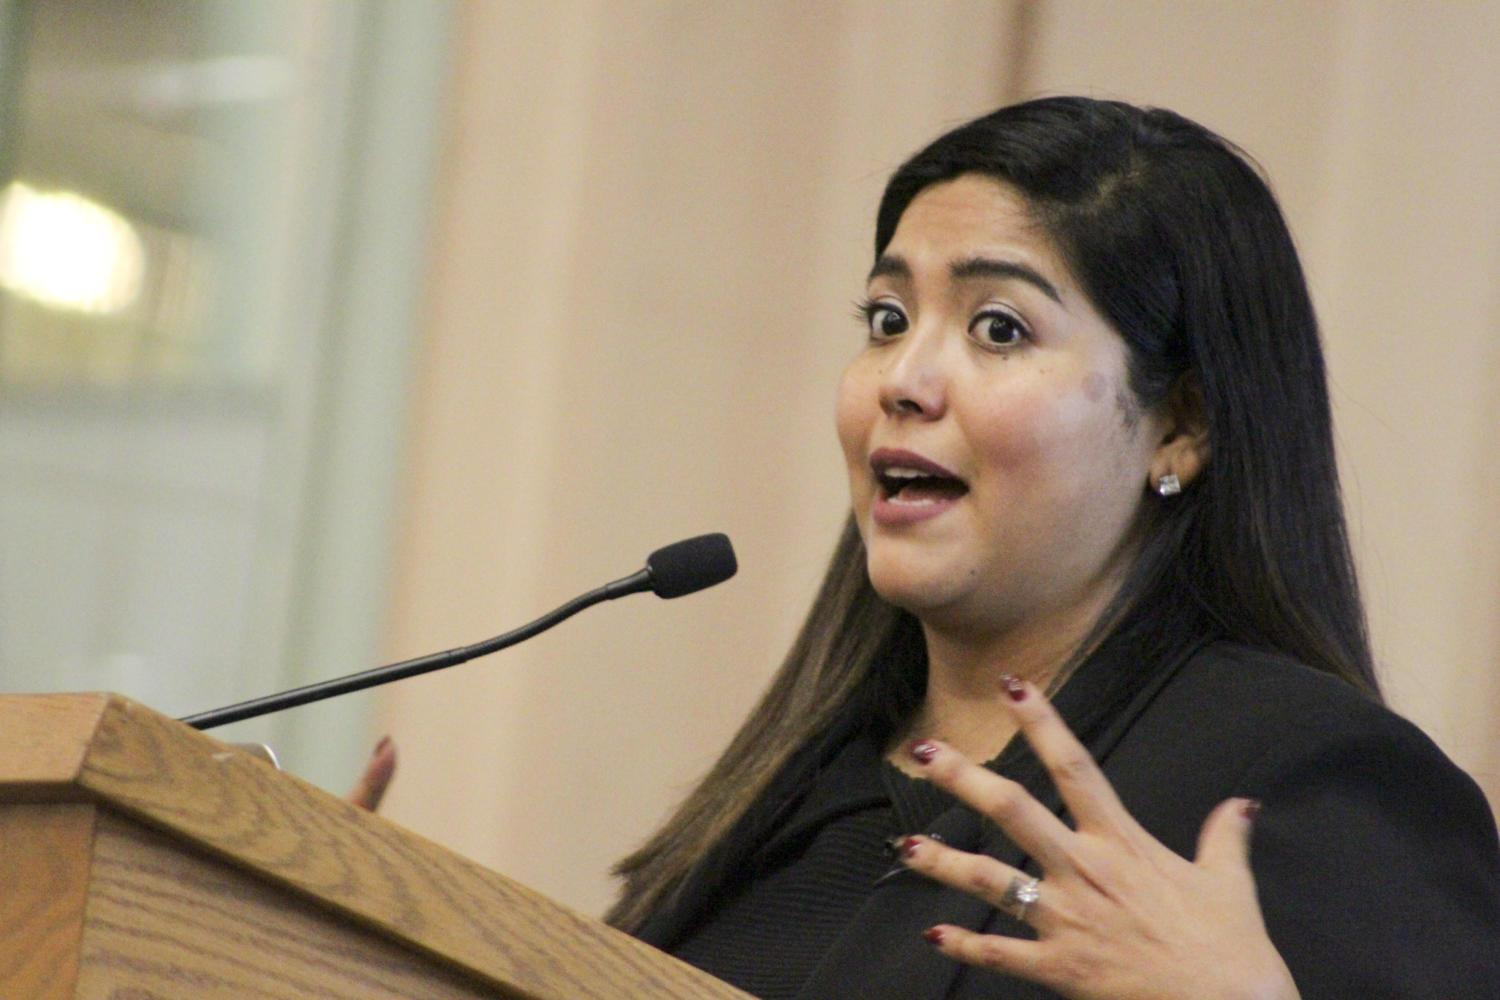 Author Julissa Arce shares her story about the American Dream Thursday as part of Pitt's International Week. (Photo by Hari Iyer | Staff Photographer)